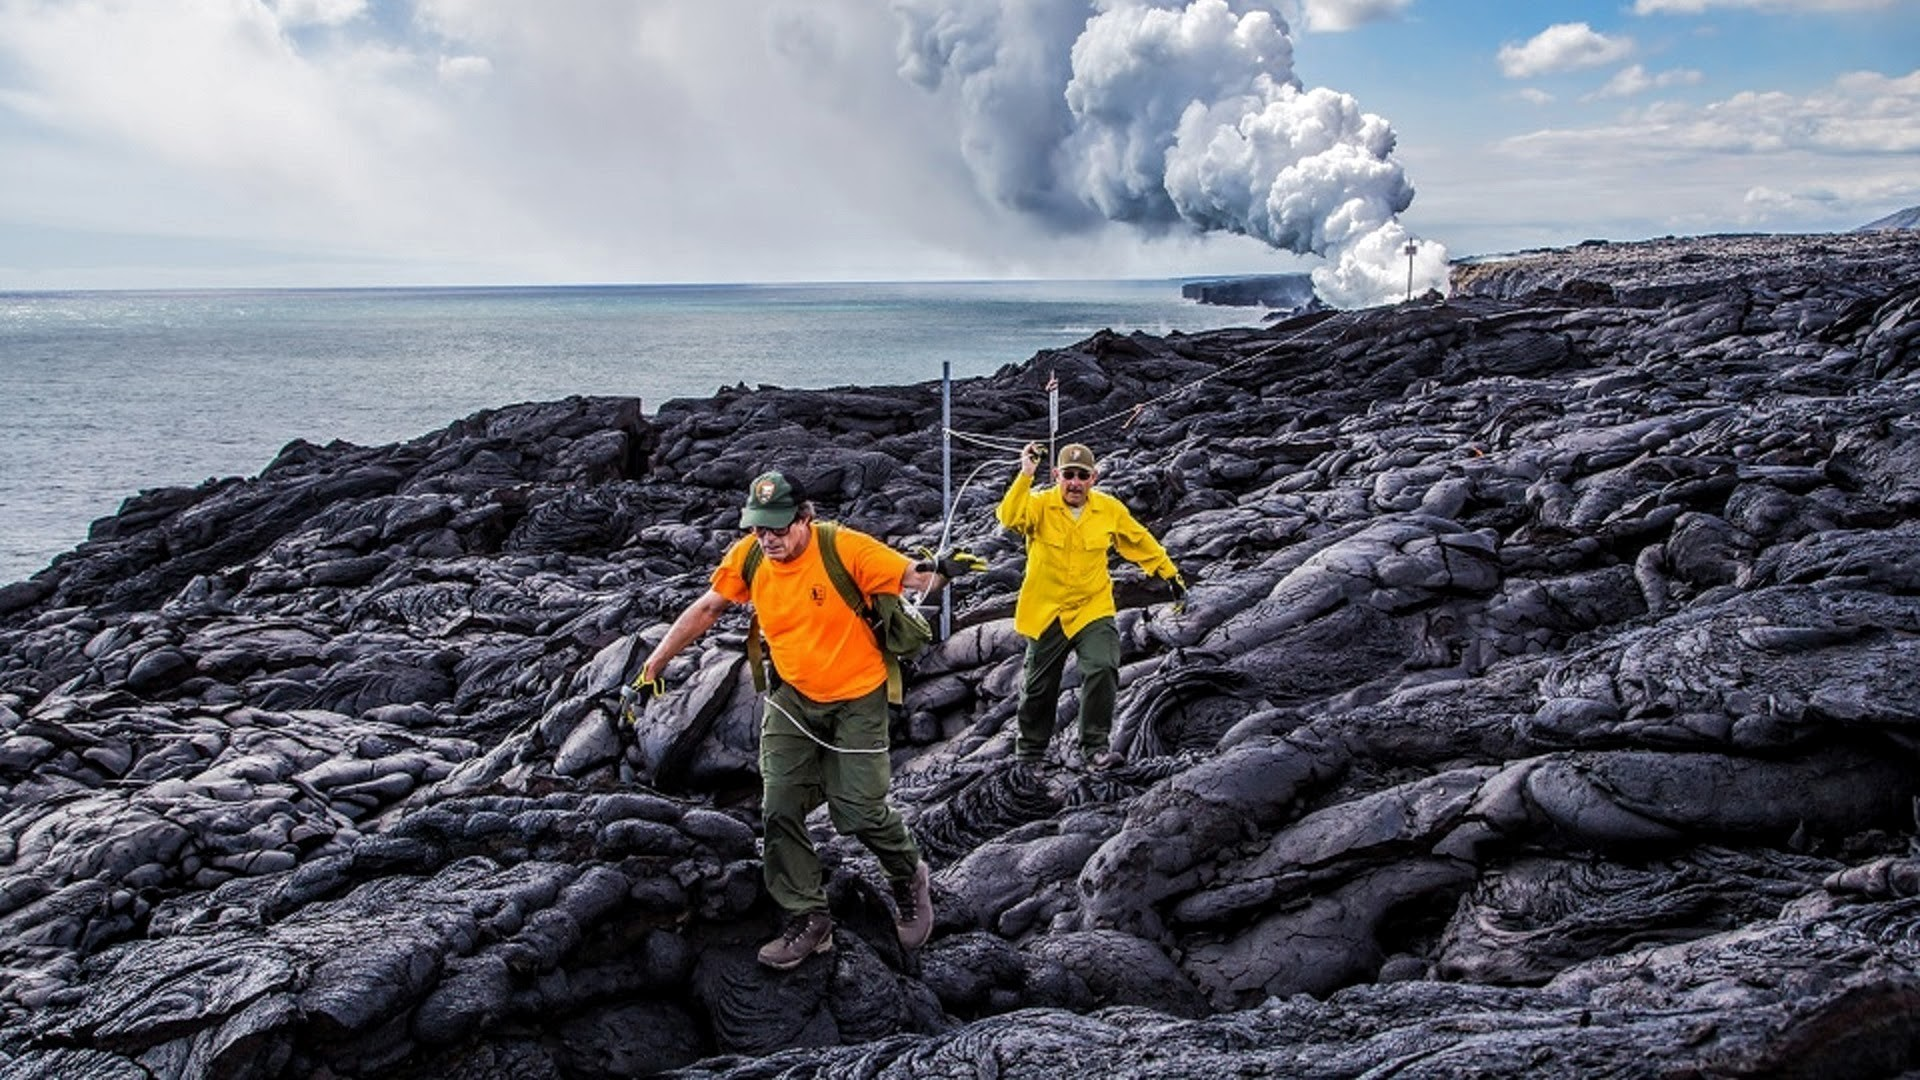 There's a new route to see spewing lava in Hawaii. But it's long.